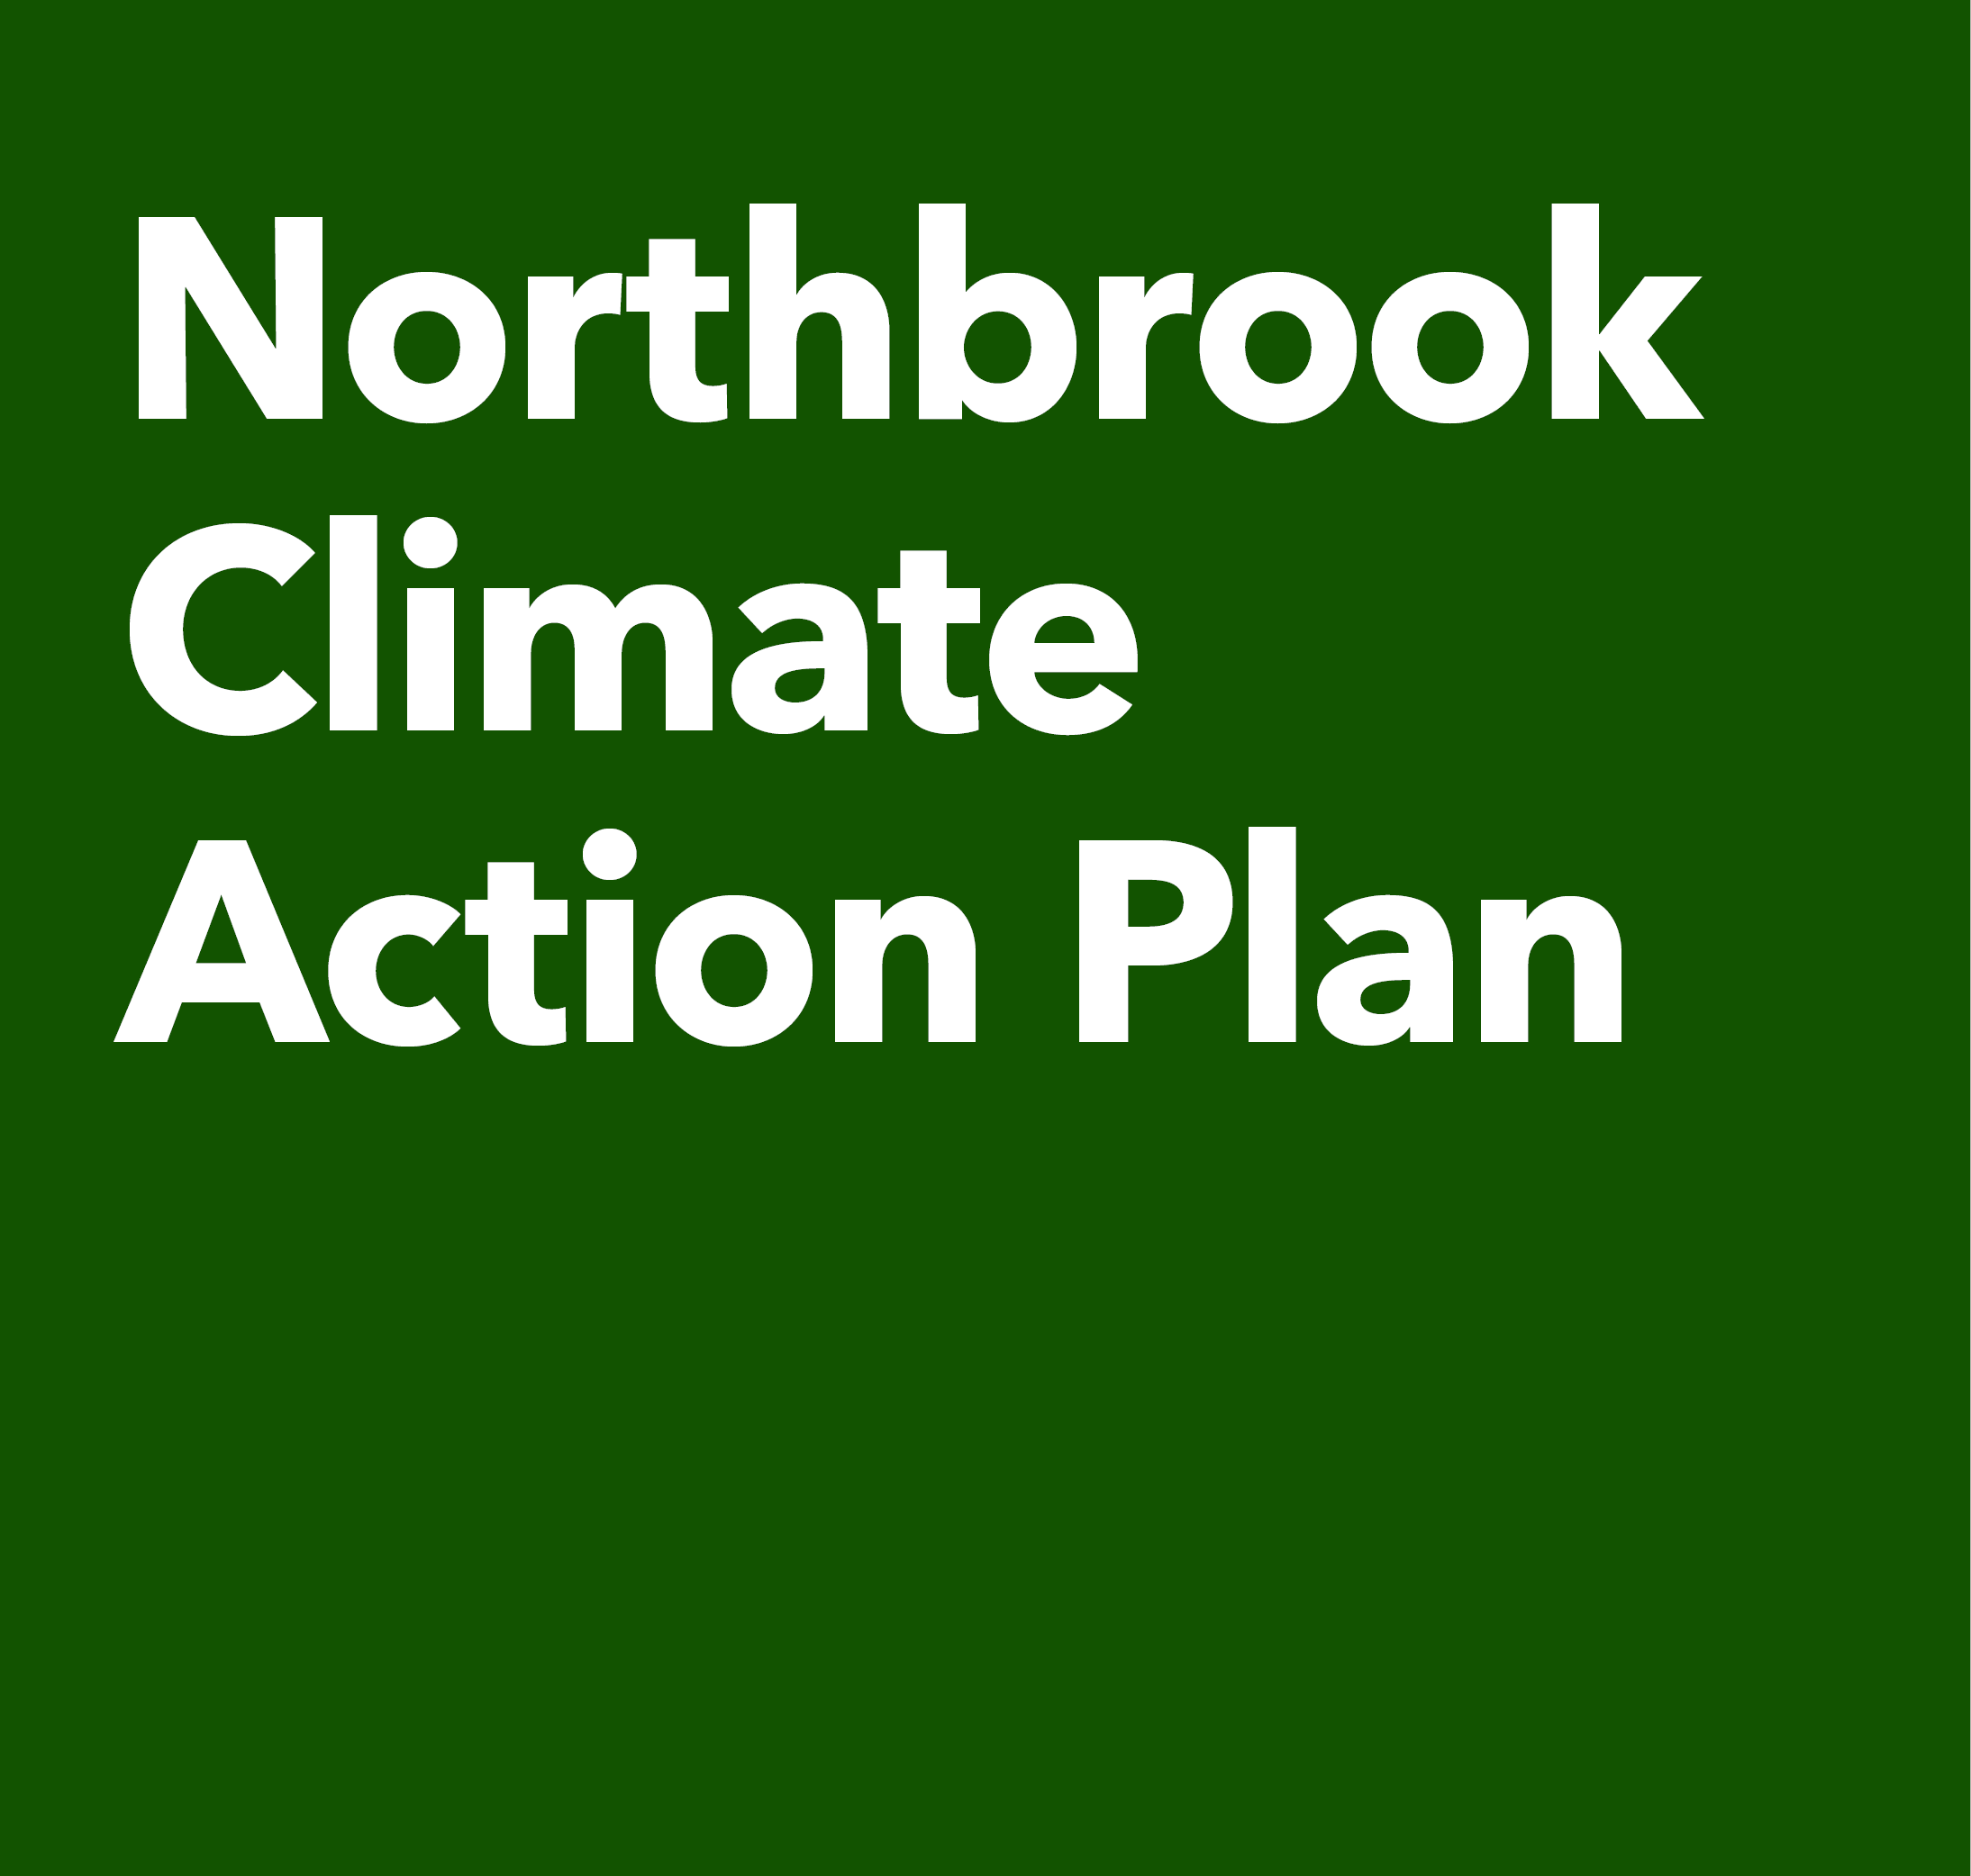 Northbrook Climate Action Plan